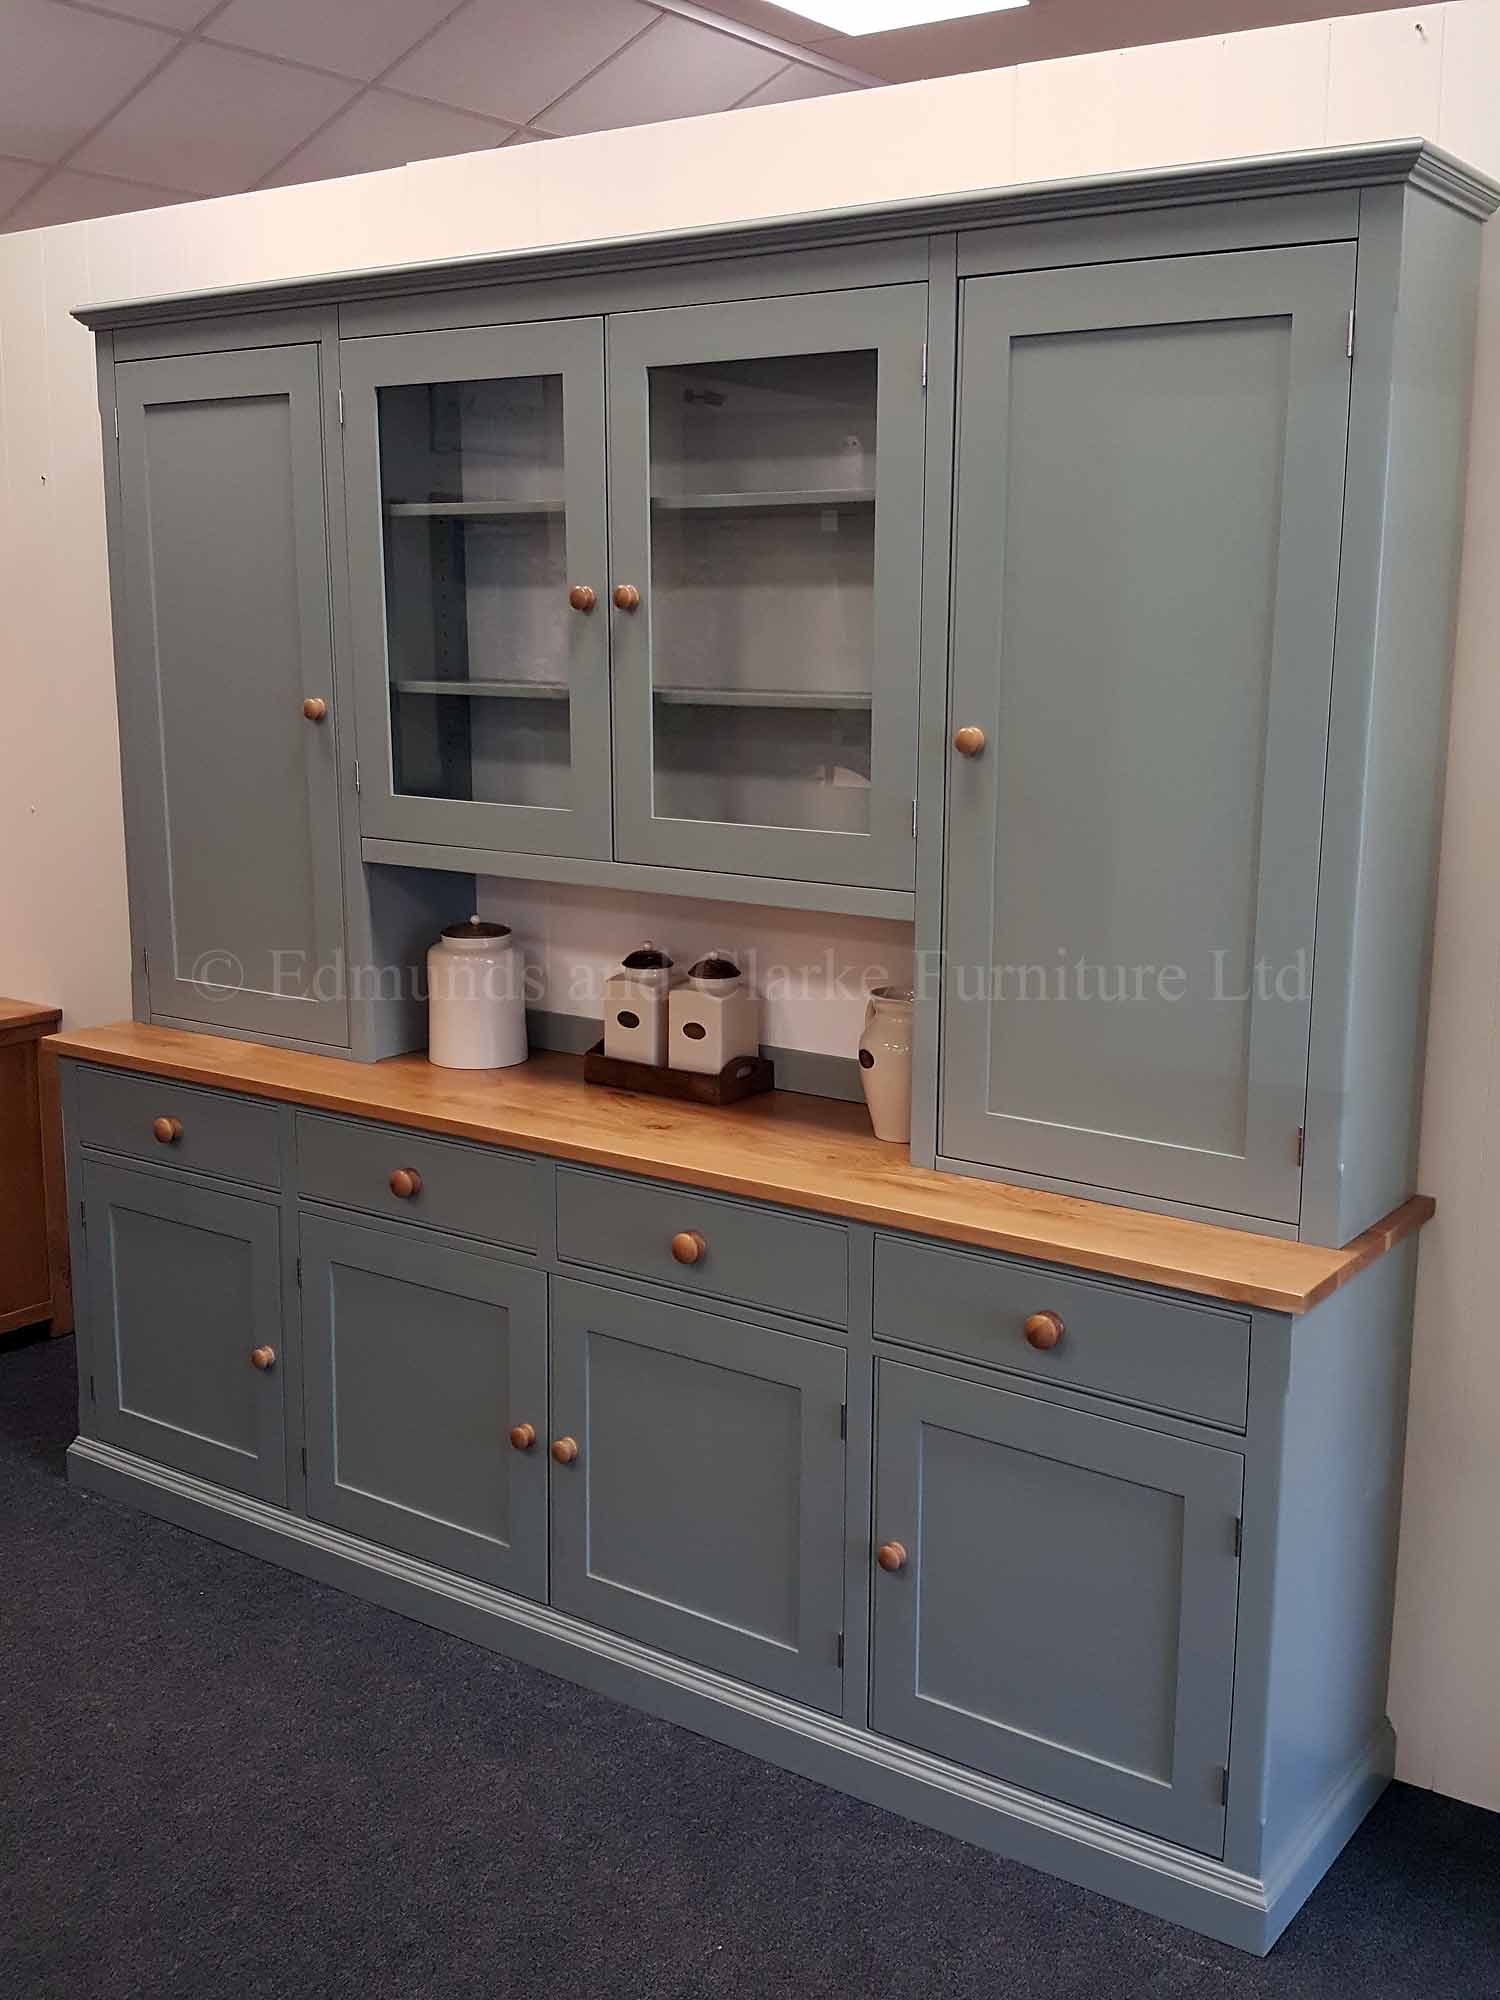 Painted 8ft storage dresser, four door and drawers in sideboard, two paneled doors in rack with two central glazed doors